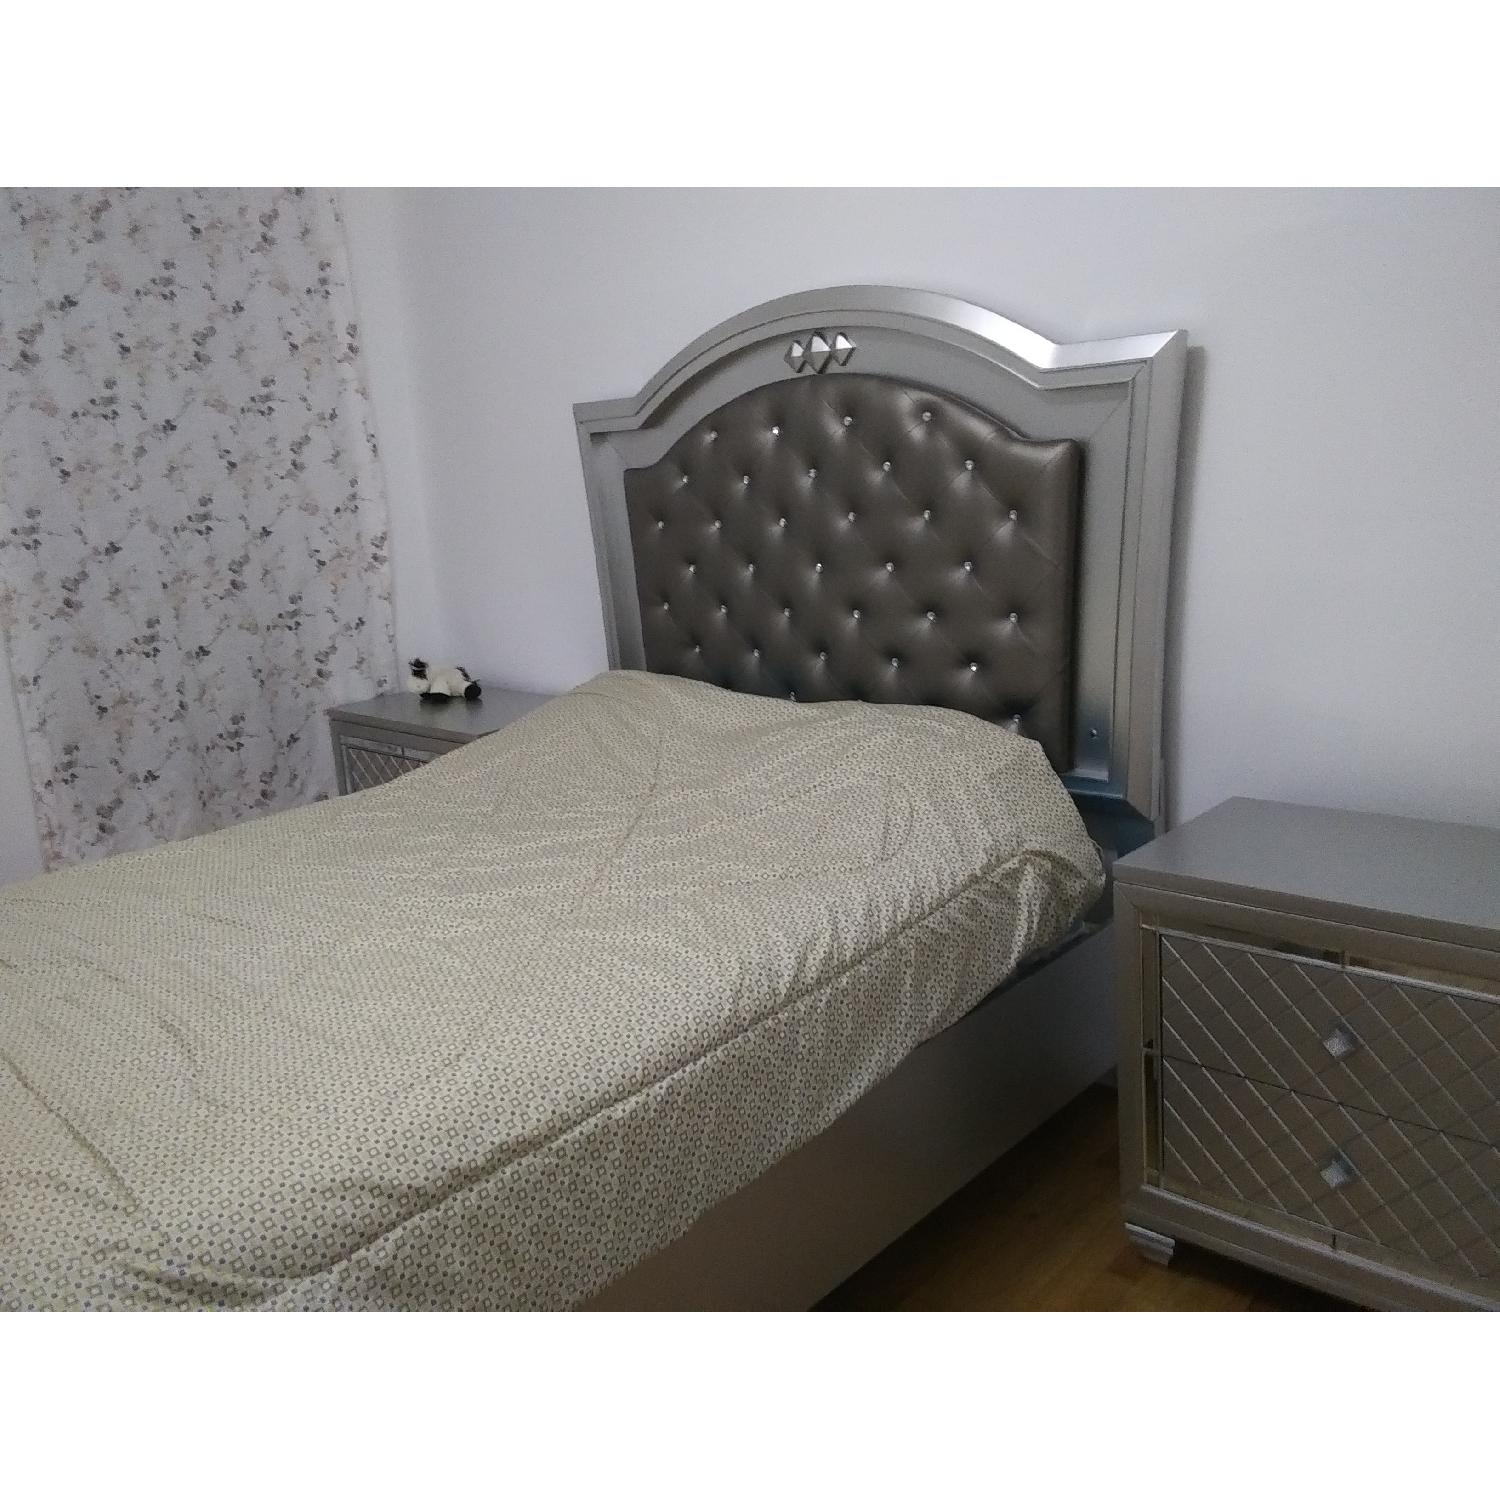 Silver Queen Size Bed w/ Storage & Lights - image-2